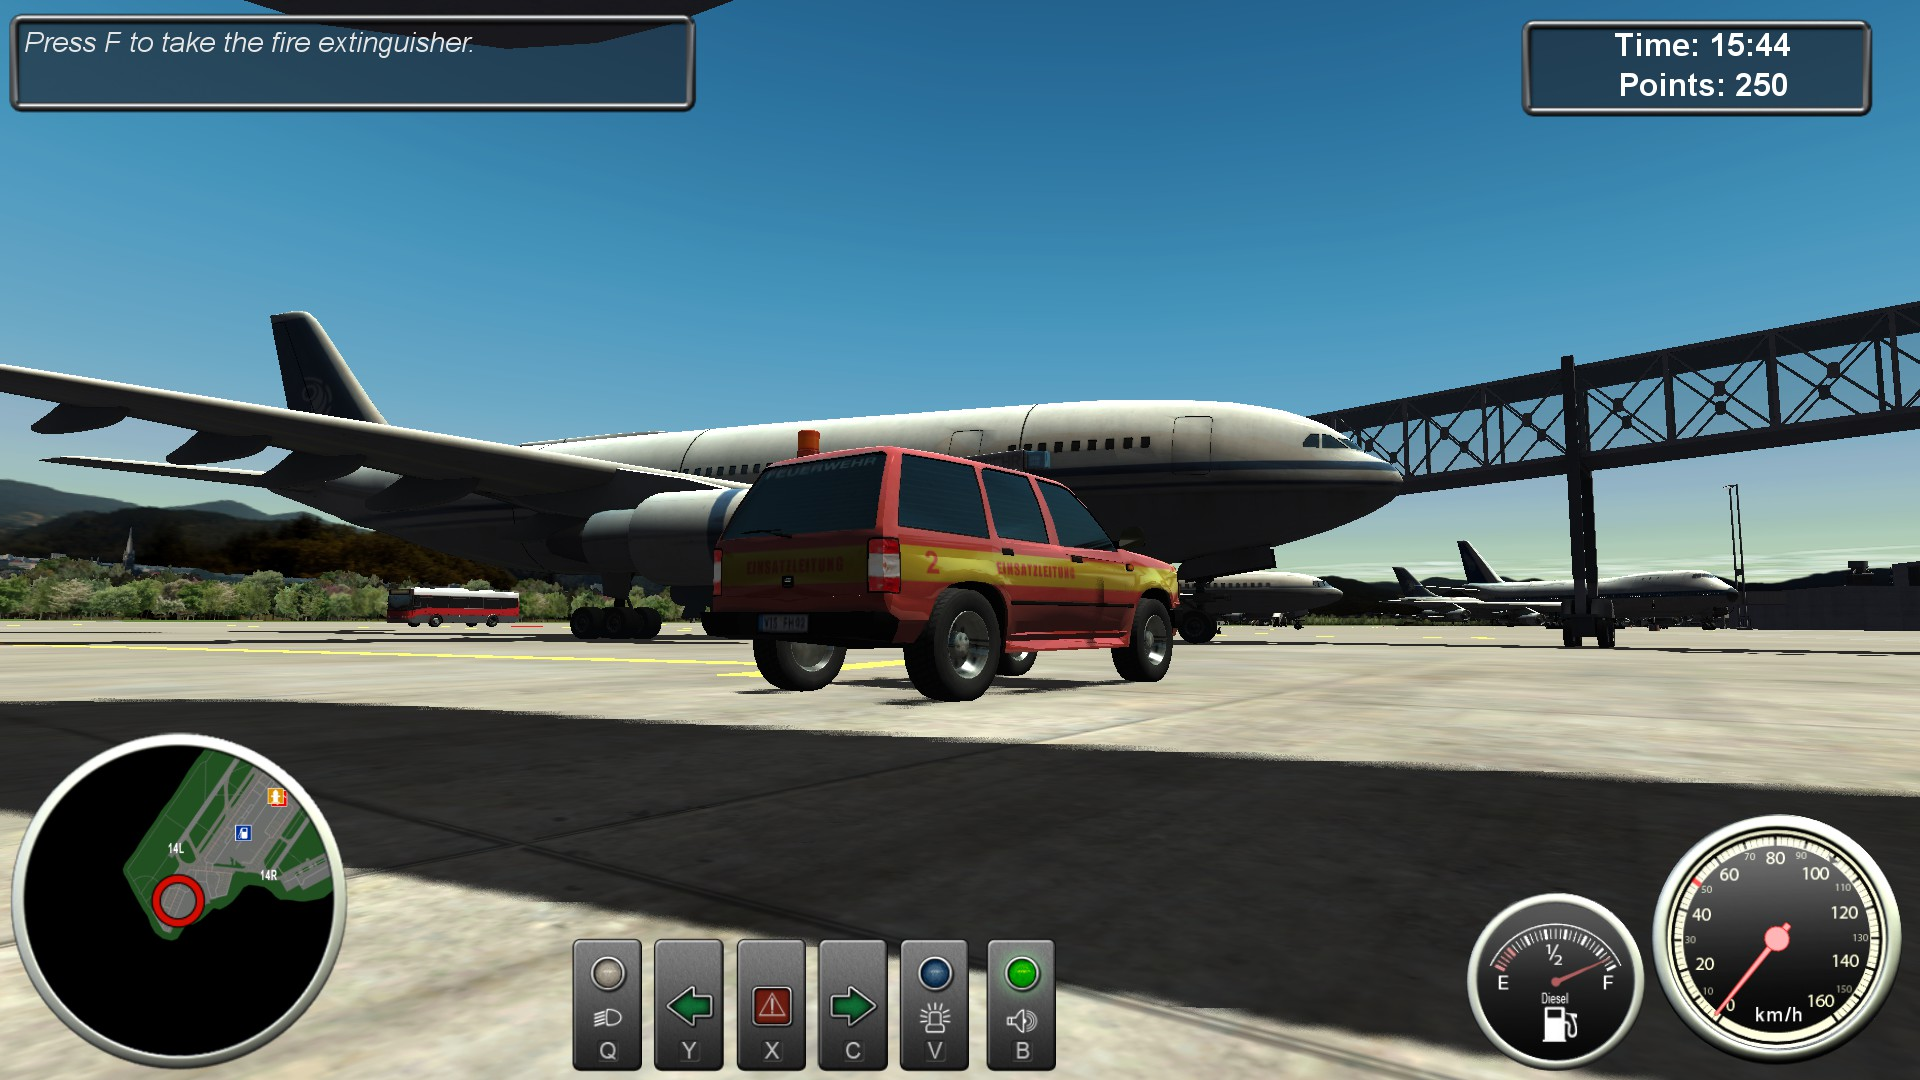 Airport Fire Department - The Simulation screenshot